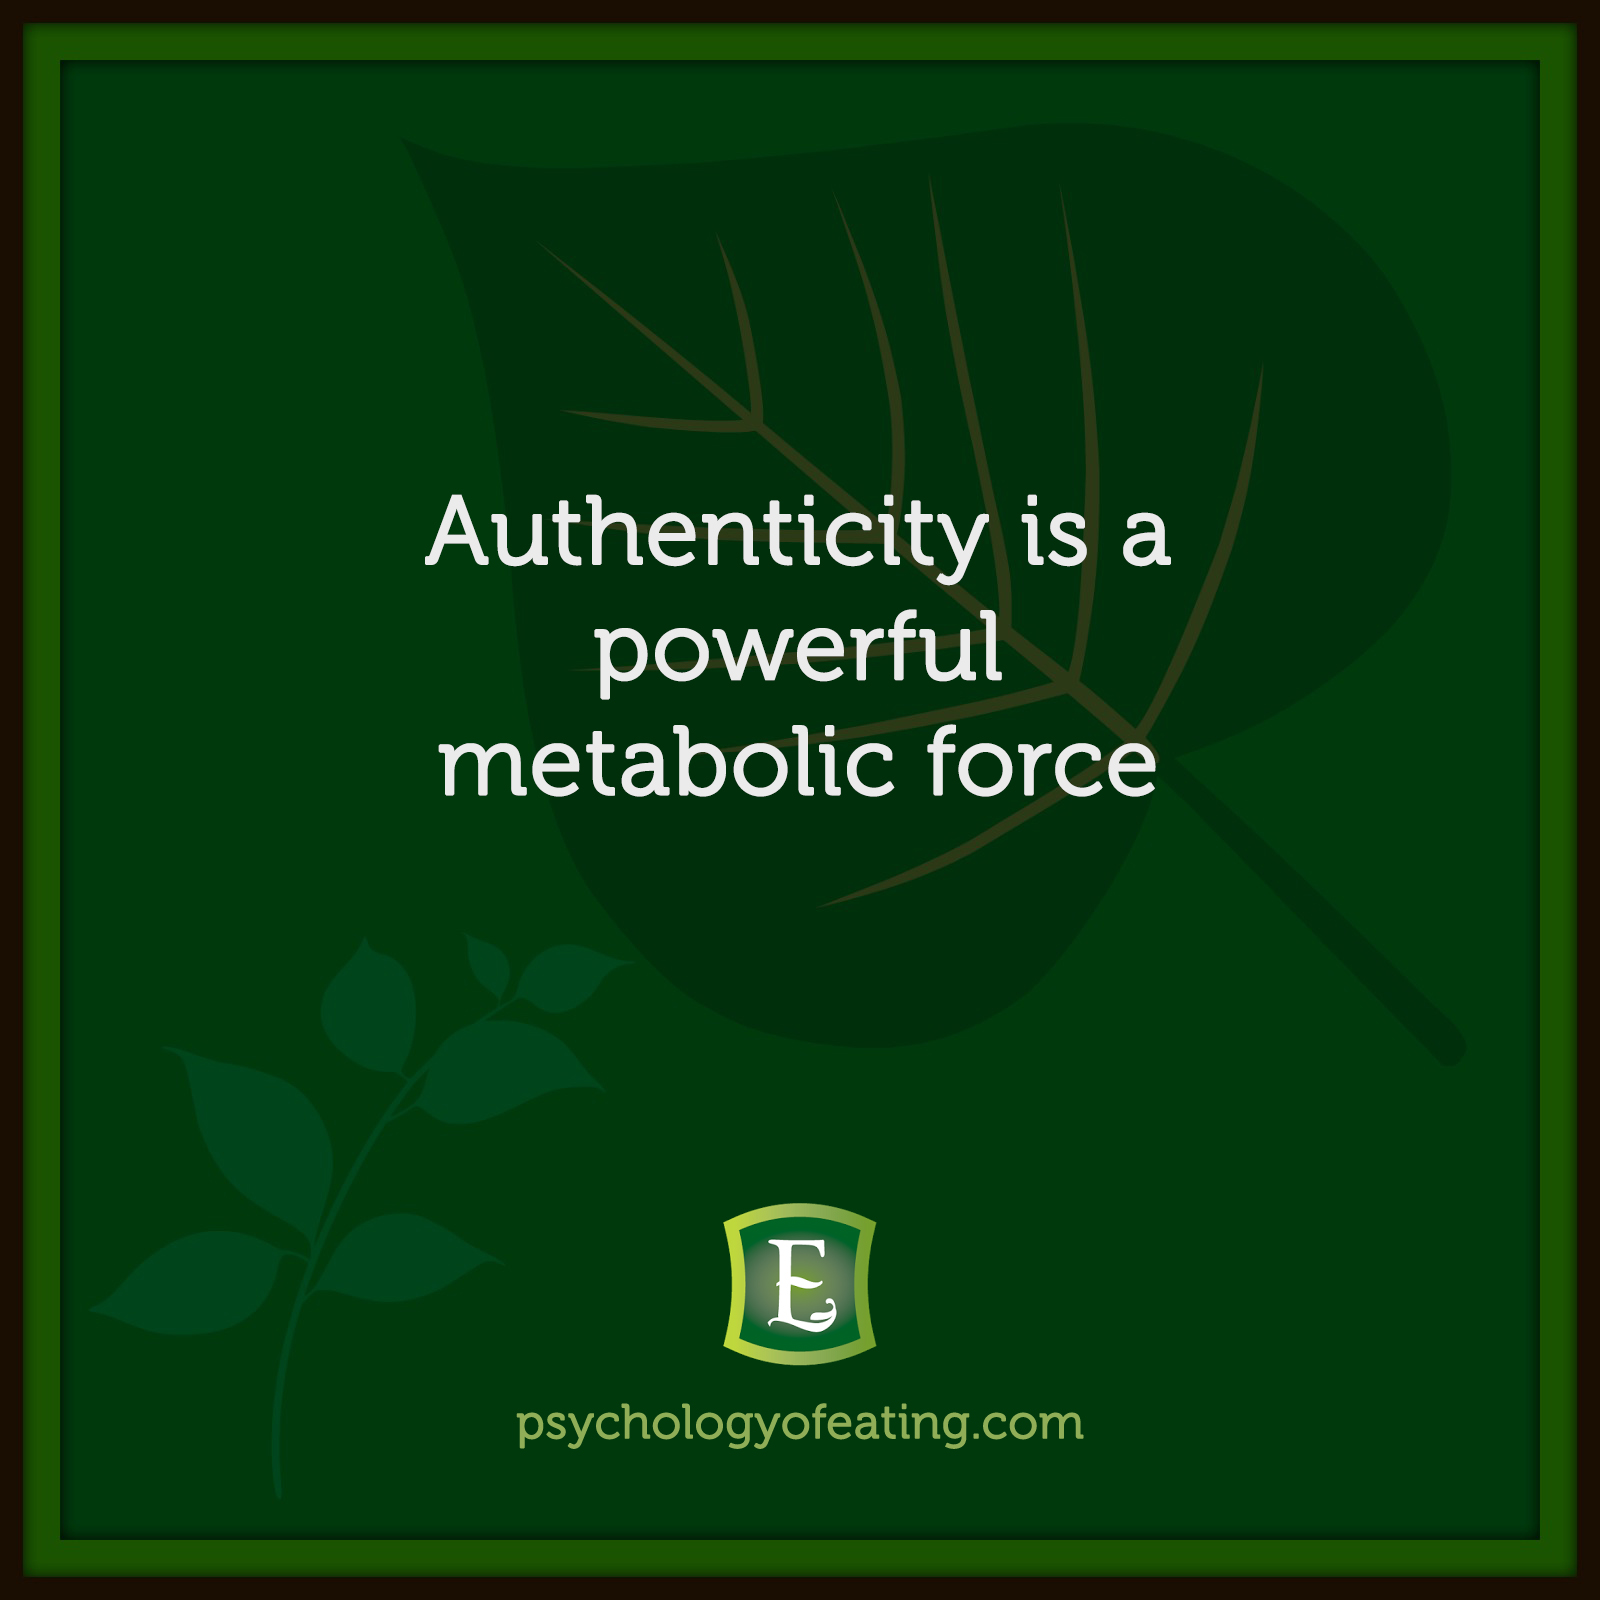 Authenticity is a powerful metabolic force #health #nutrition #eatingpsychology #IPE